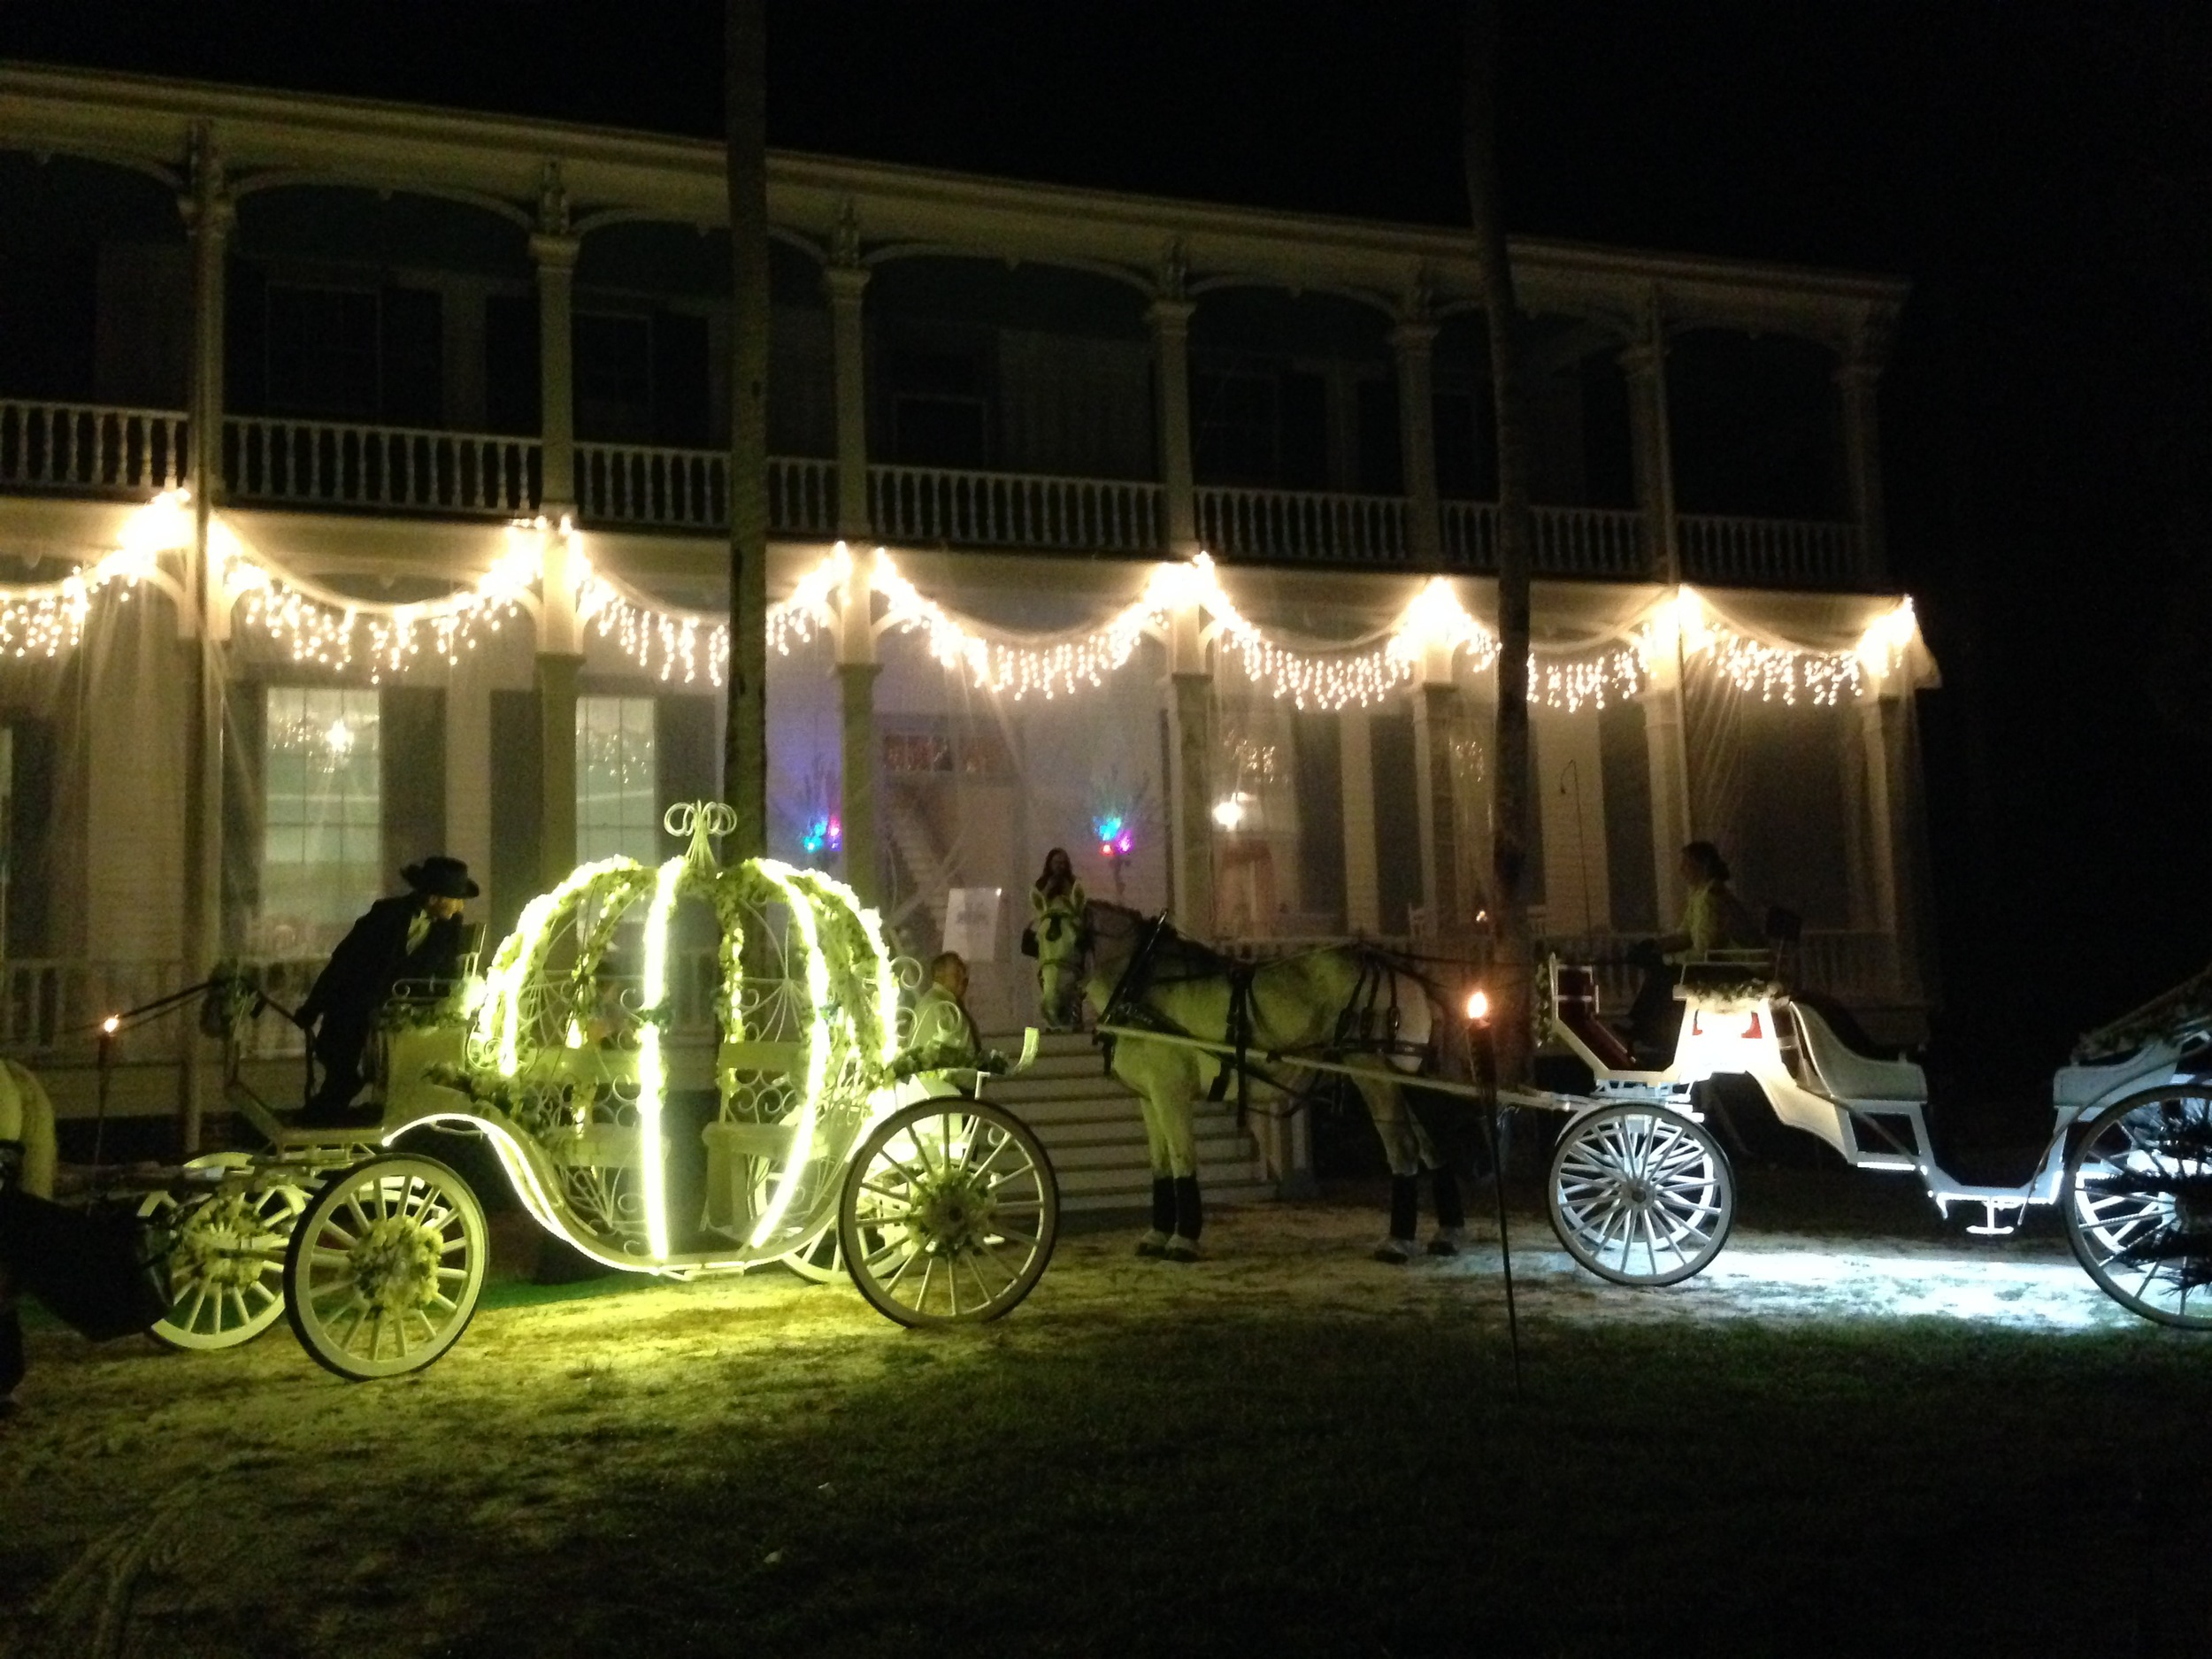 Fundraiser - working with our friends from  HighHorse Carriage Company  in DeBary, FL